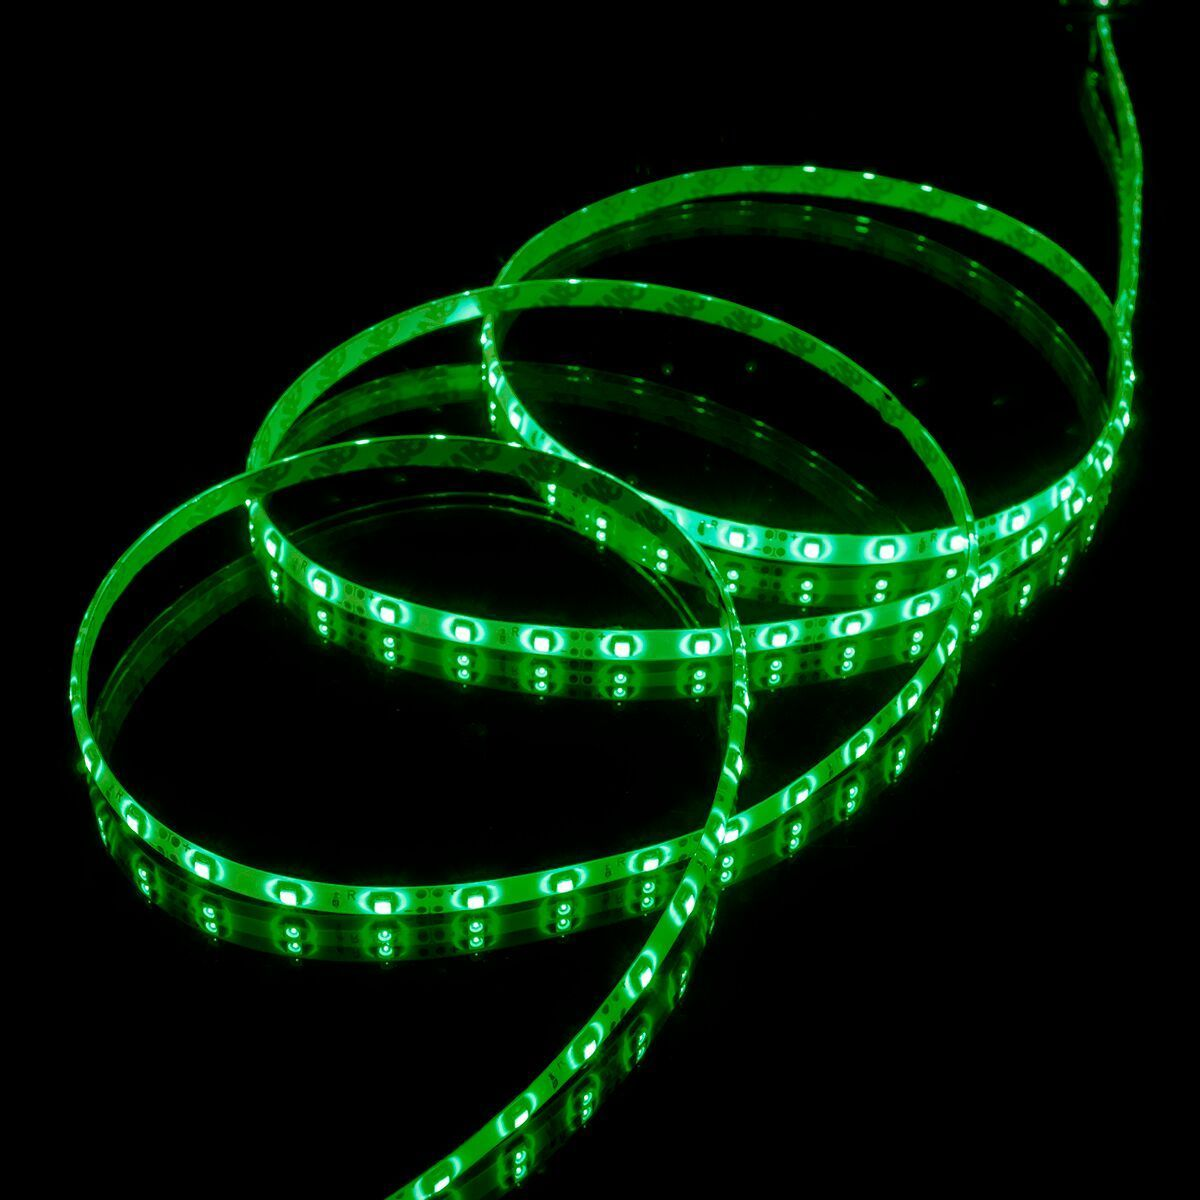 Clearance red green or blue luma5 led light strip single color 164 clearance red green or blue luma5 led light strip single color 164 feet aloadofball Gallery